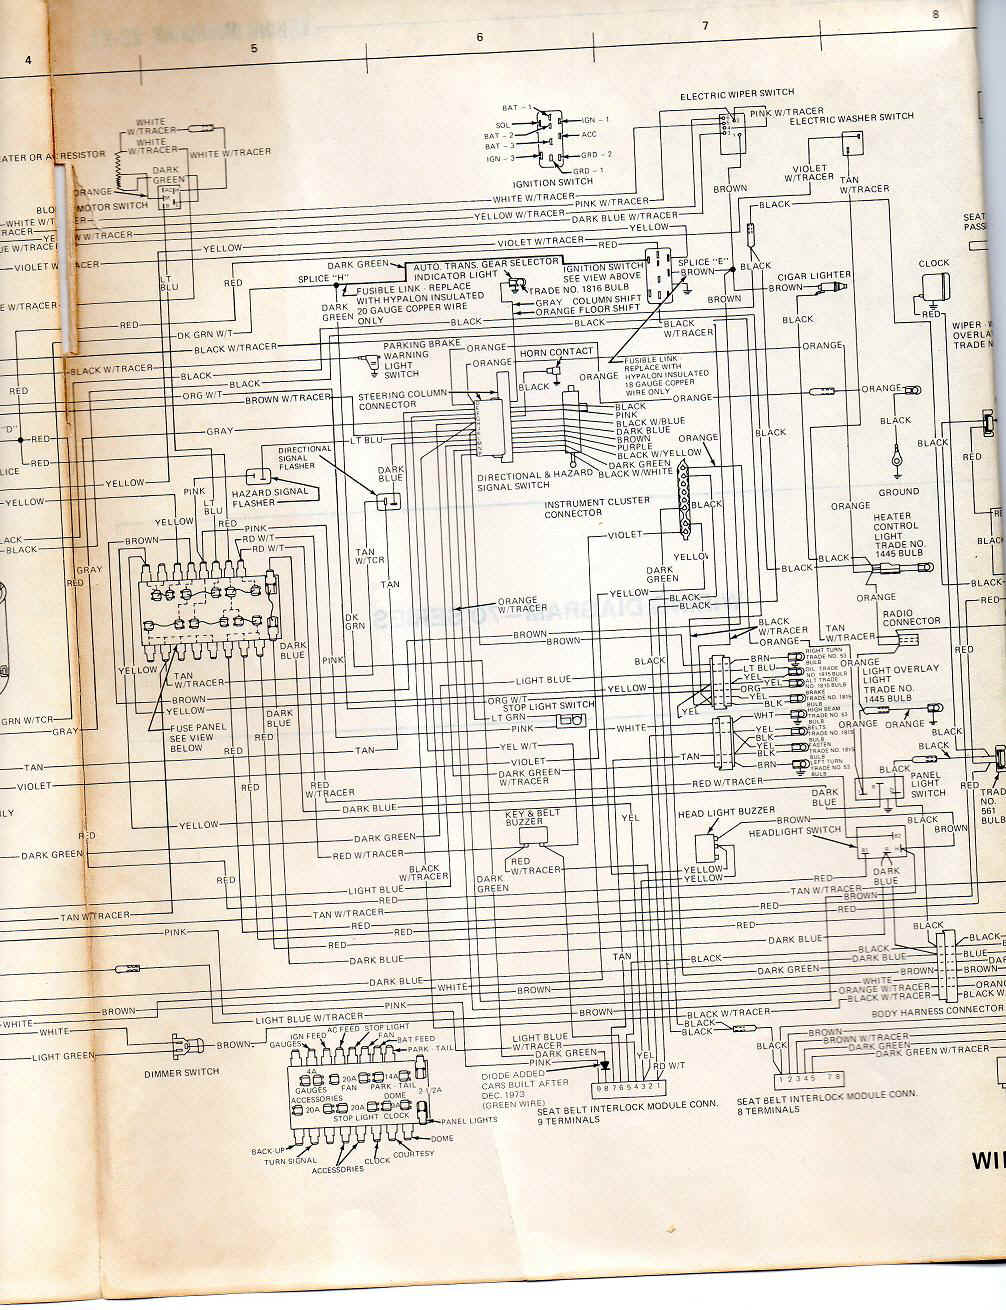 hight resolution of 1969 amc amx wiring diagram share circuit diagrams amc amx wiring harness share circuit diagrams 1969